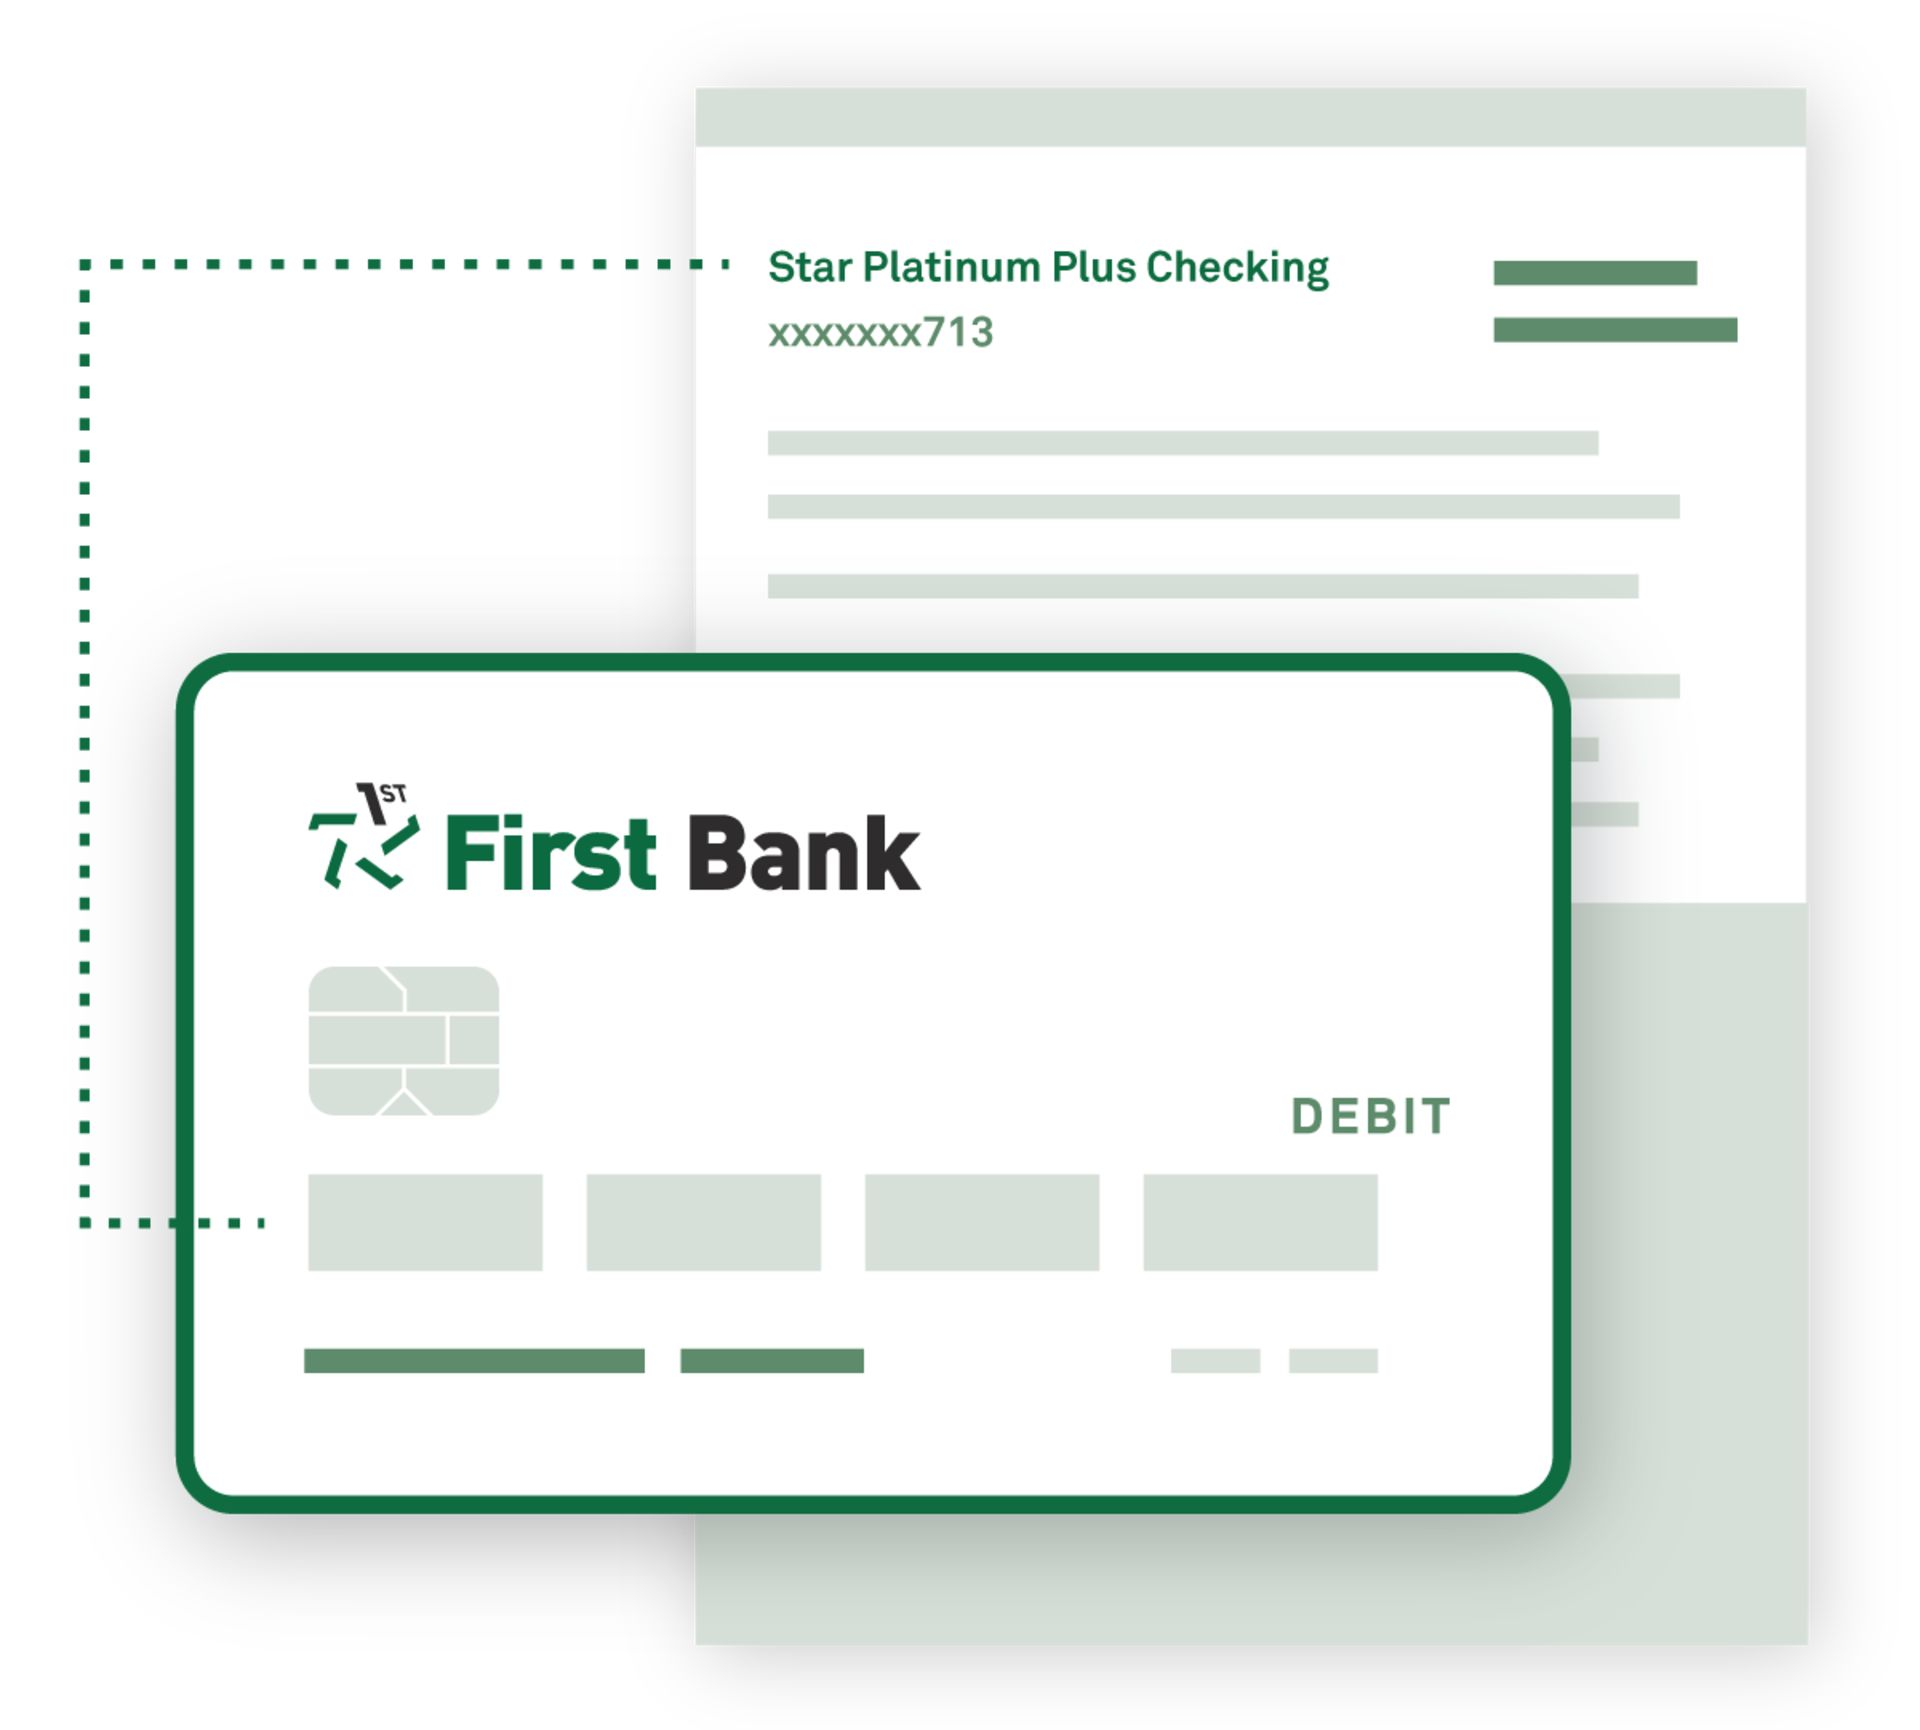 An illustration showing a debit card and account register.